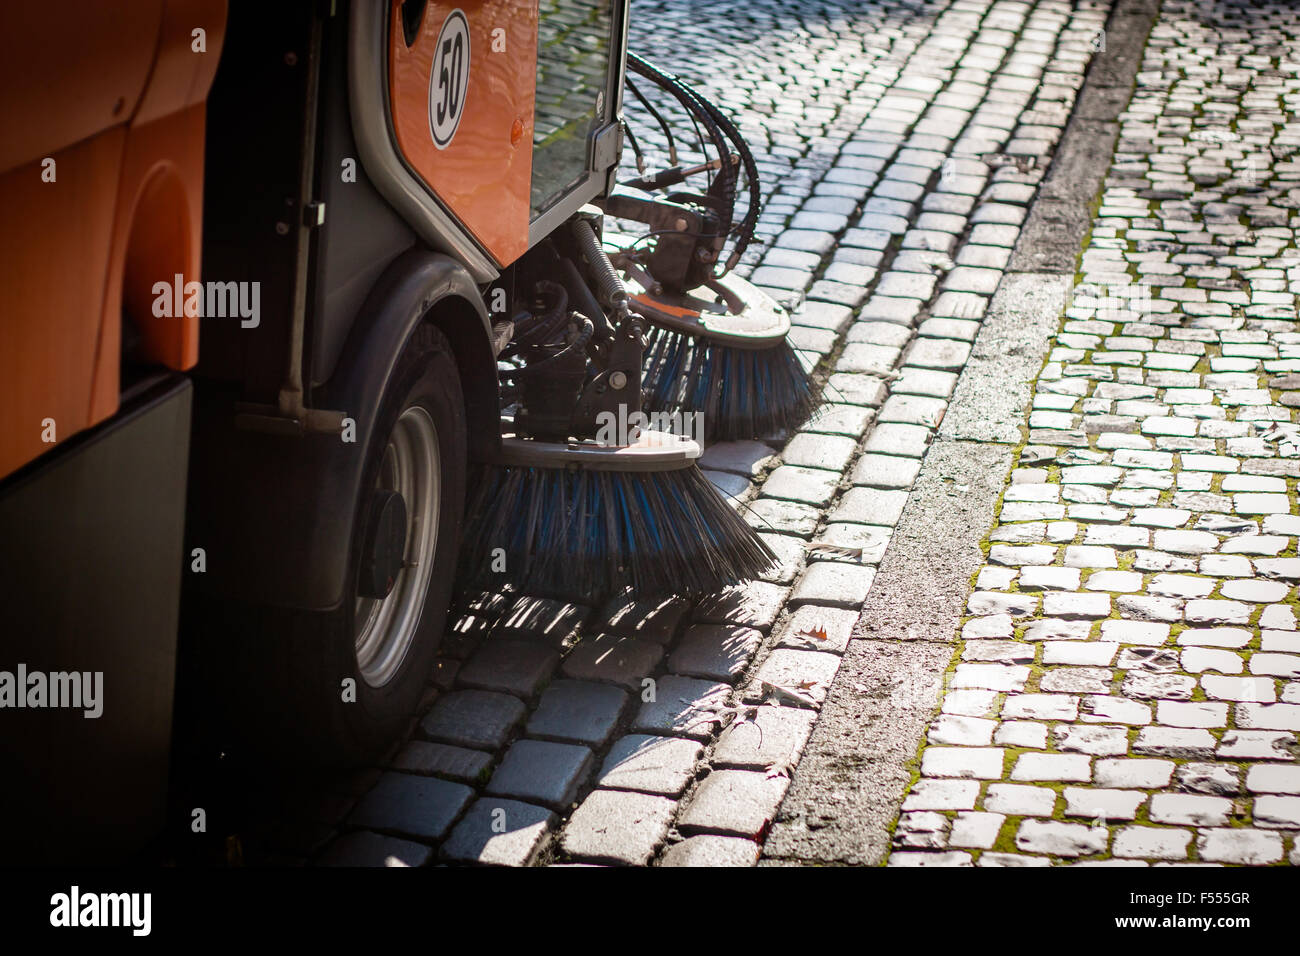 Street sweeper cleaning the streets Stock Photo